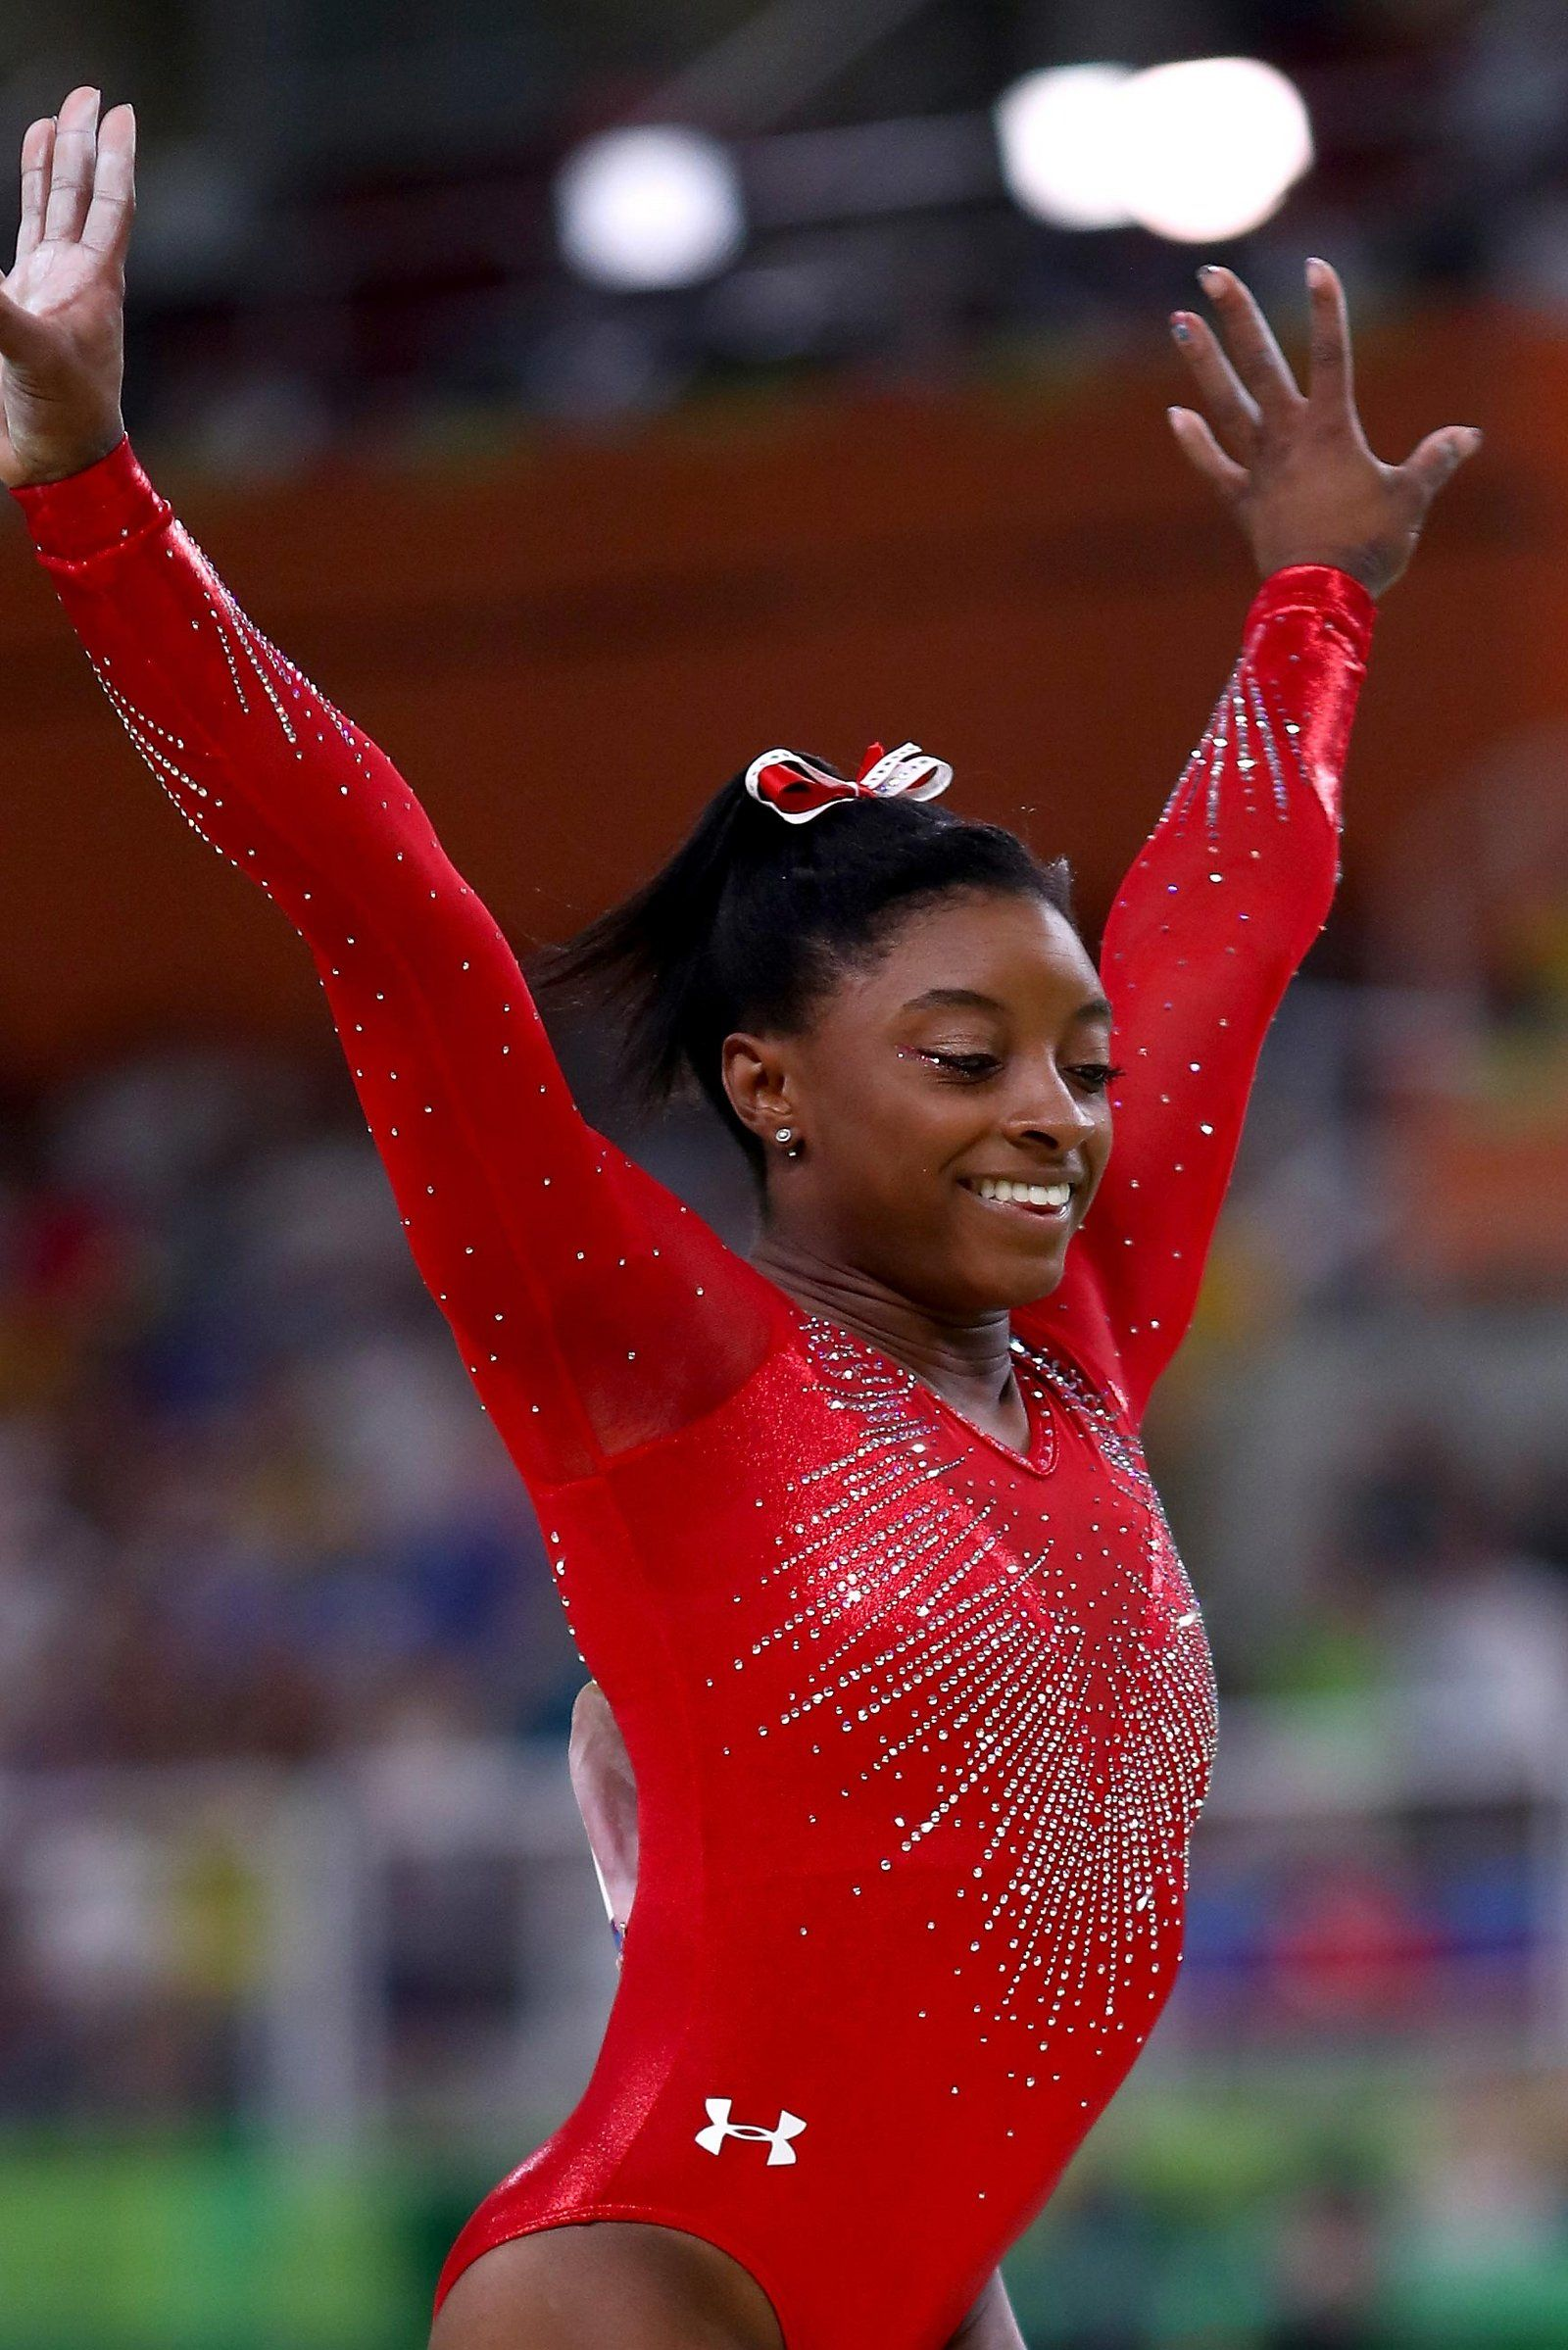 Young Simone Biles nudes (24 photos), Ass, Is a cute, Instagram, butt 2020